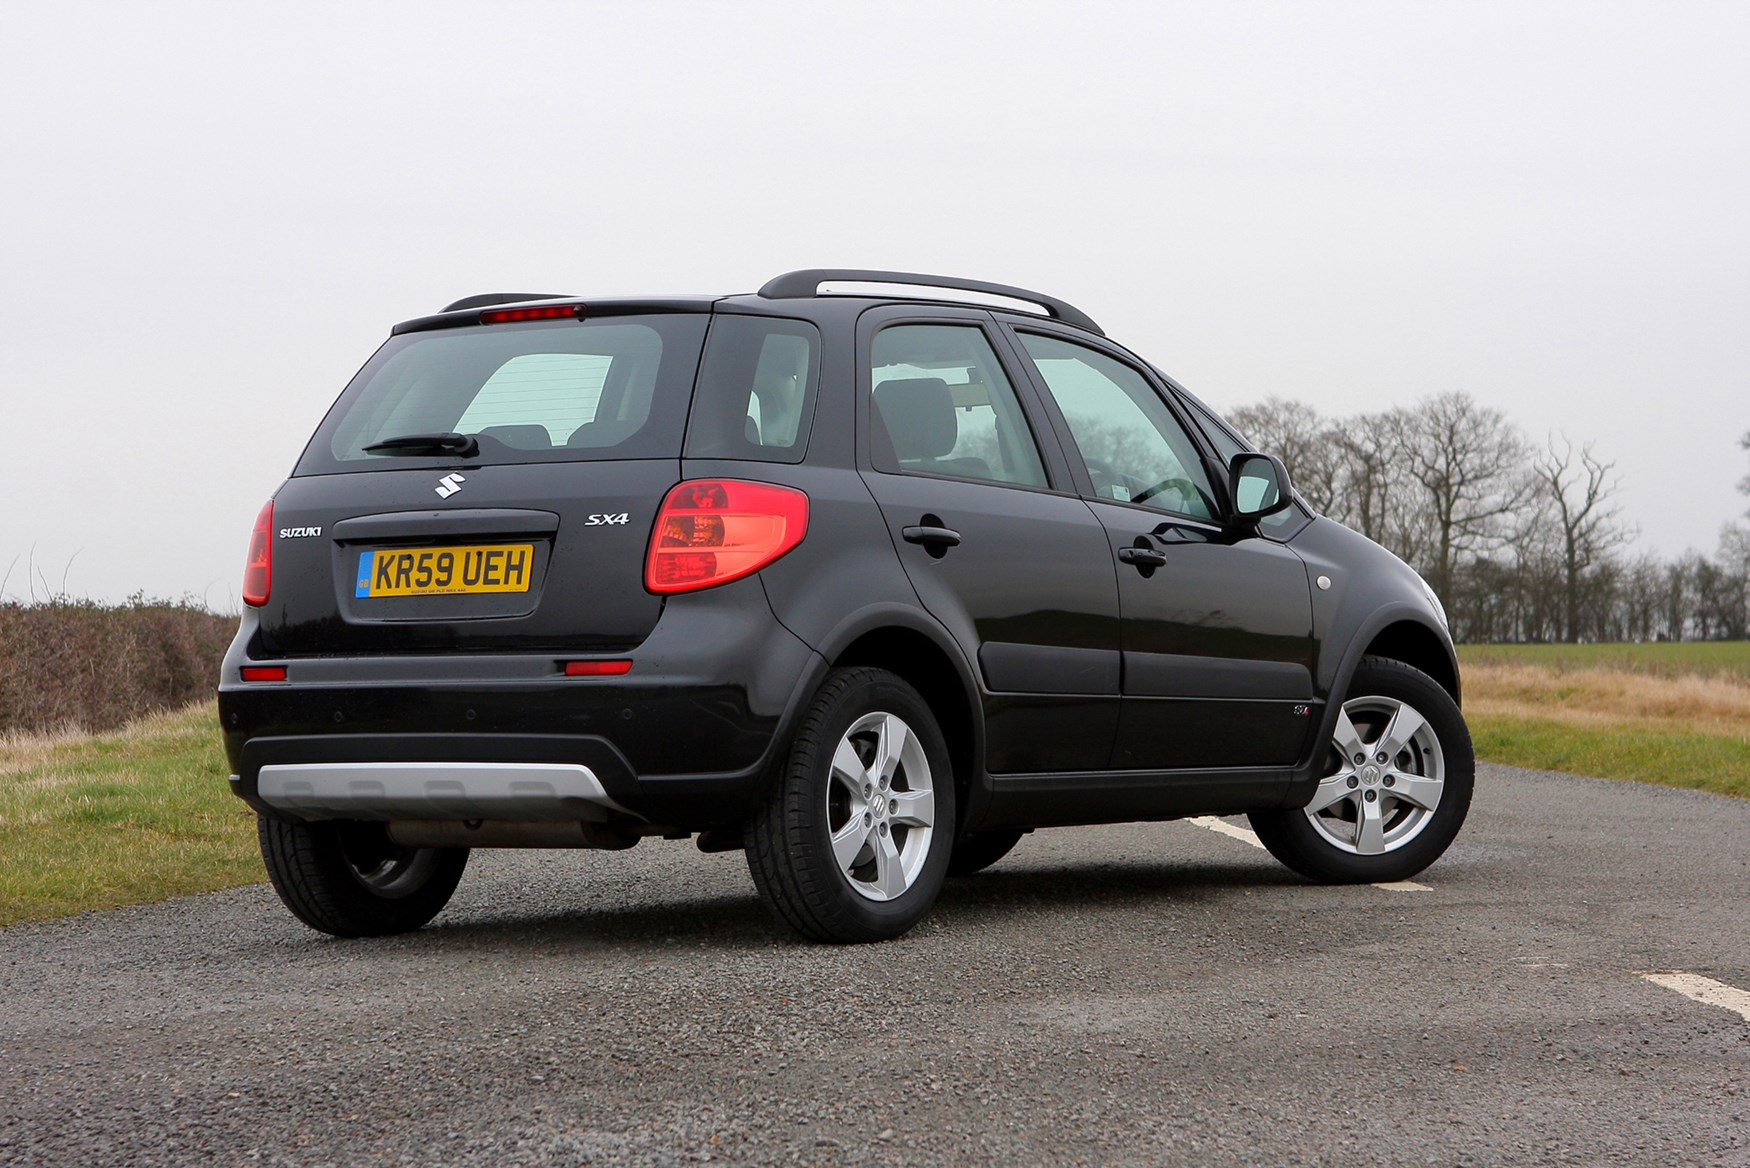 suzuki sx4 hatchback review 2006 2014 parkers. Black Bedroom Furniture Sets. Home Design Ideas